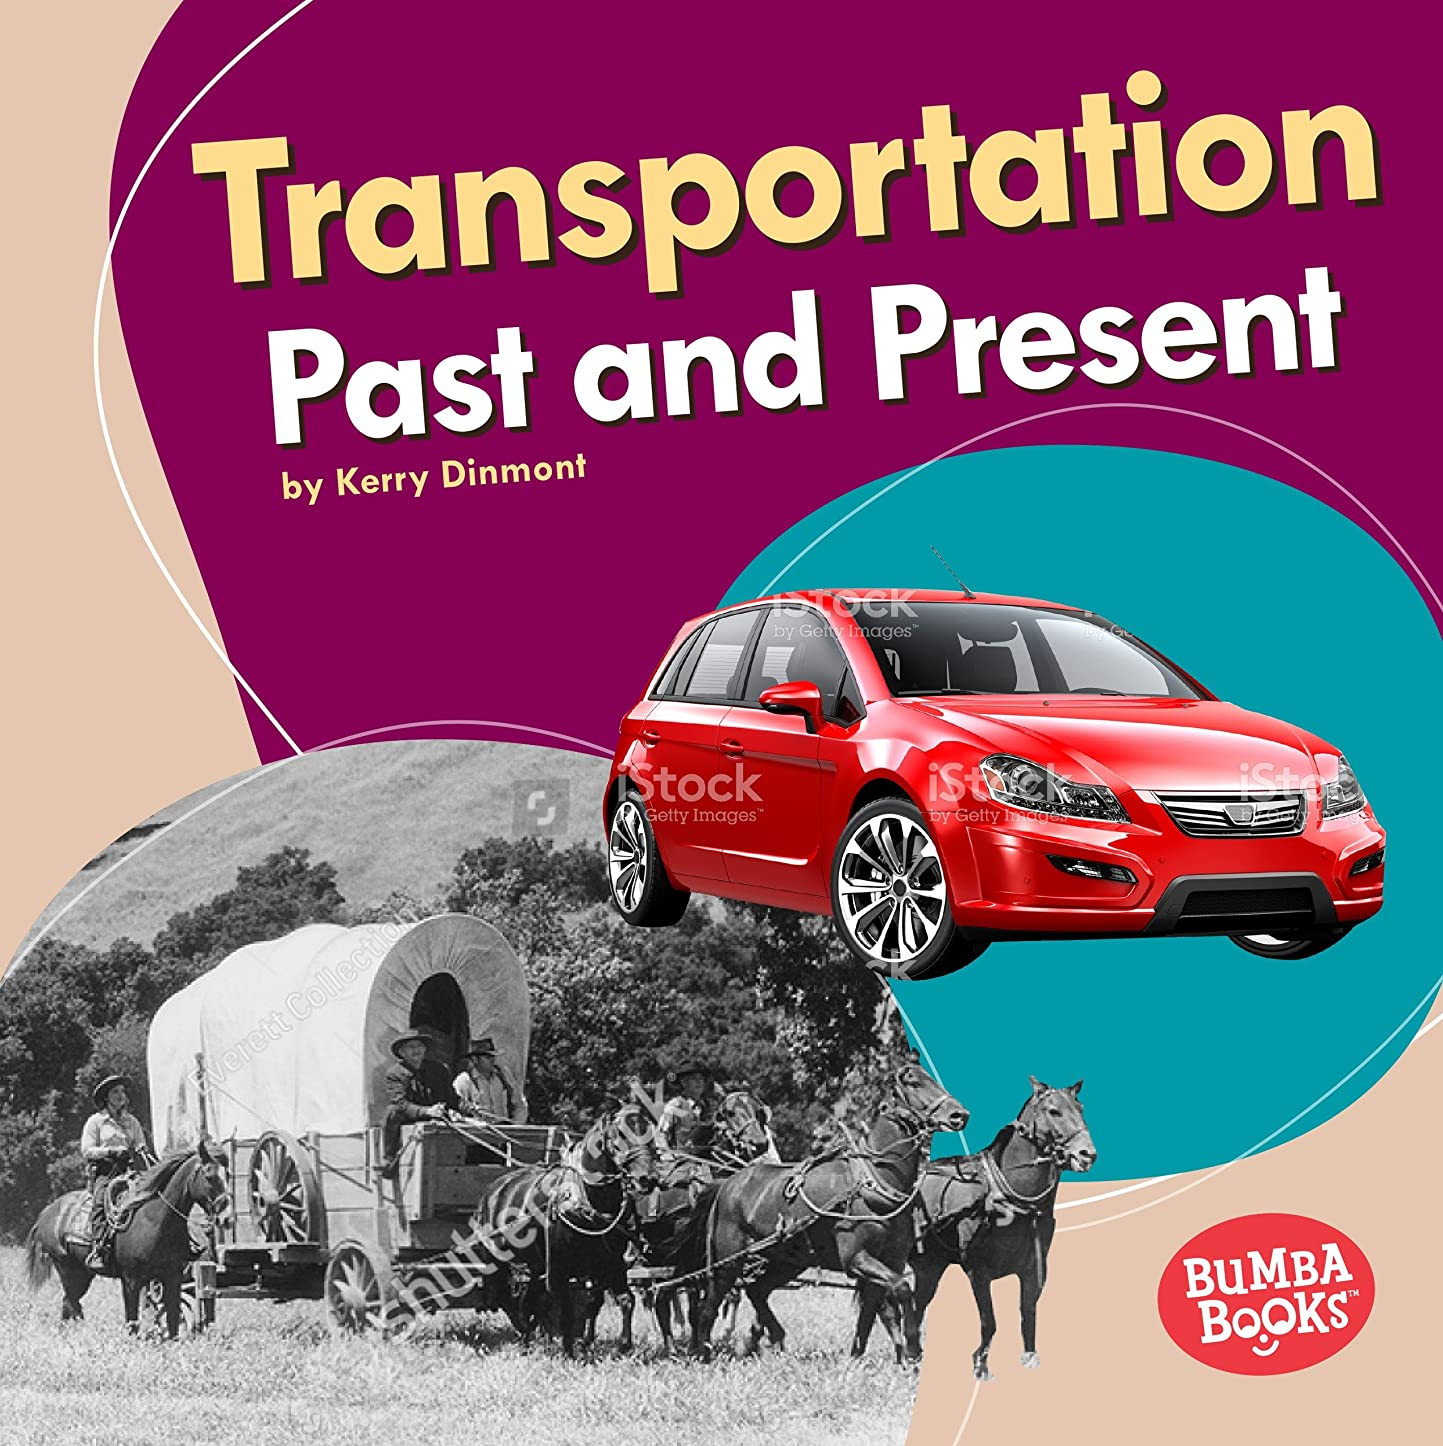 Transportation Past and Present (Bumba Books ? — Past and Present) (English Edition)